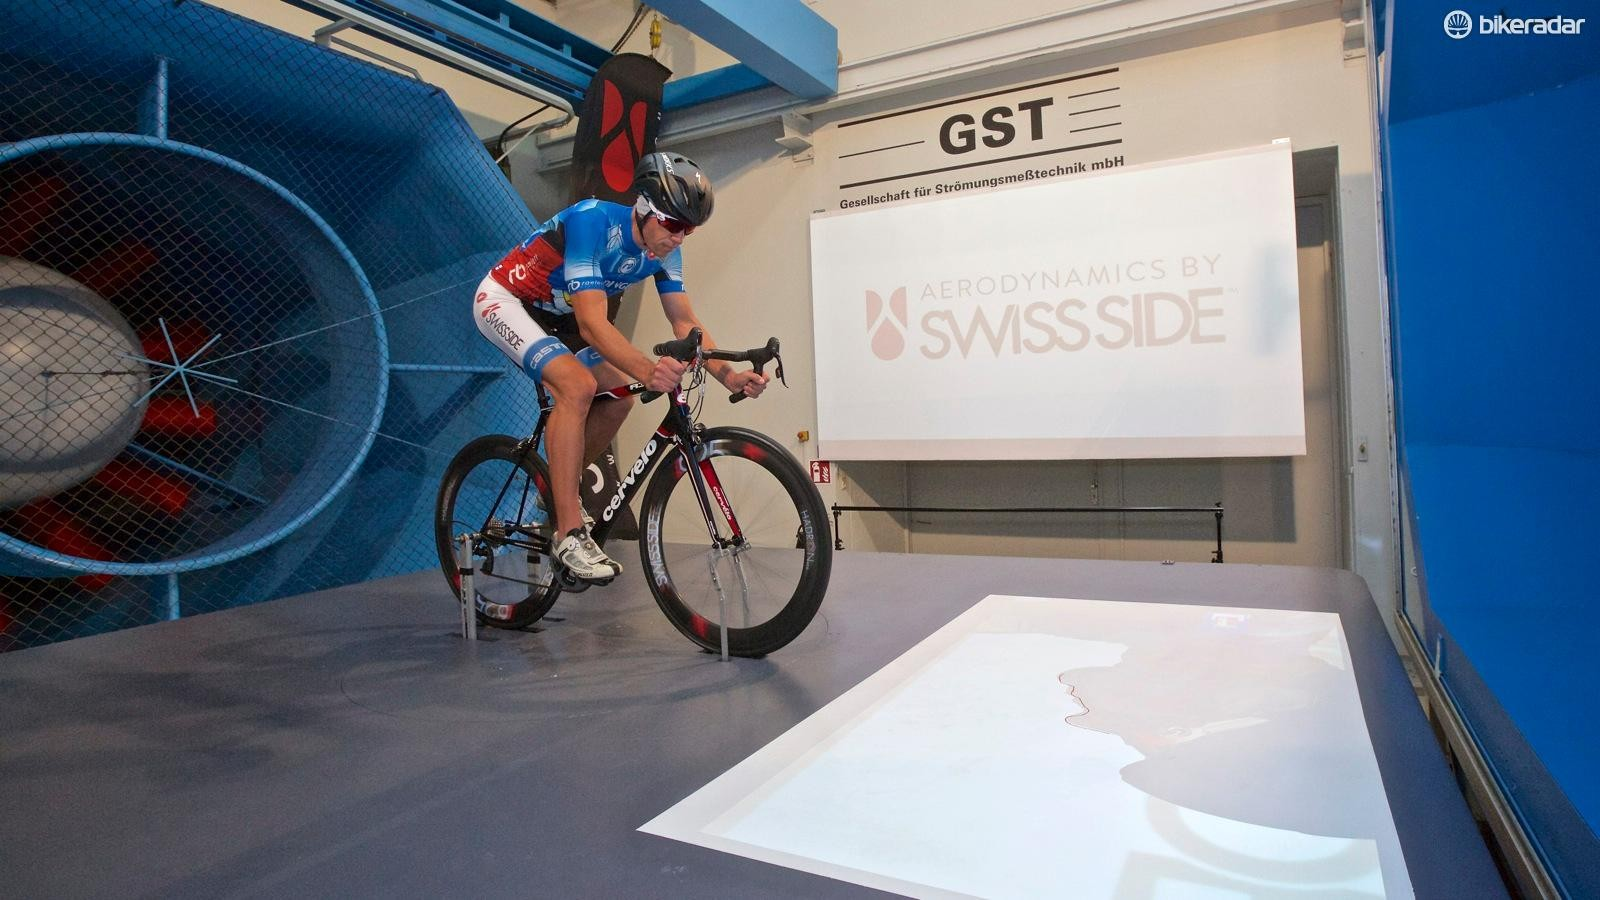 Swiss Side aerodynamics team leader Christian Kleiner tested helmets for BikeRadar at the GST wind tunnel in Germany